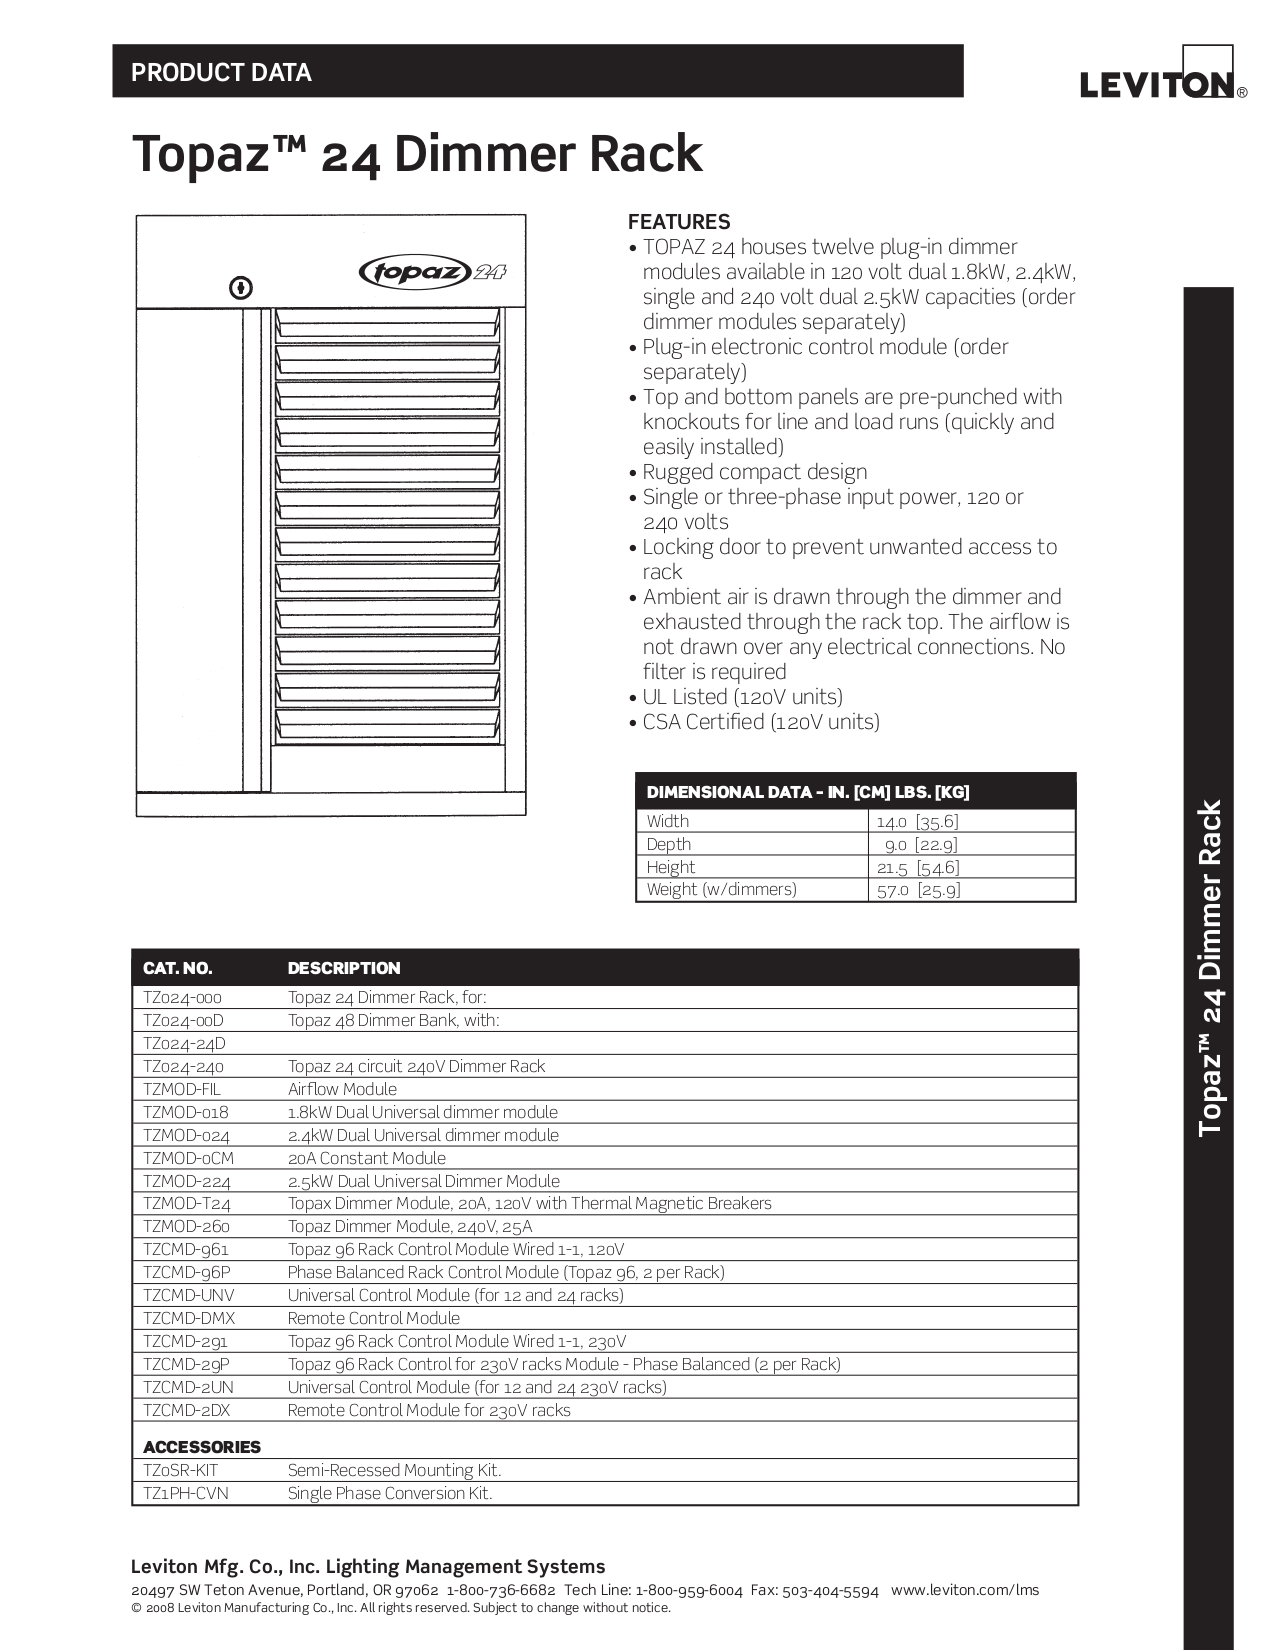 Download free pdf for Leviton Topaz 96 Dimmer Racks Other manual